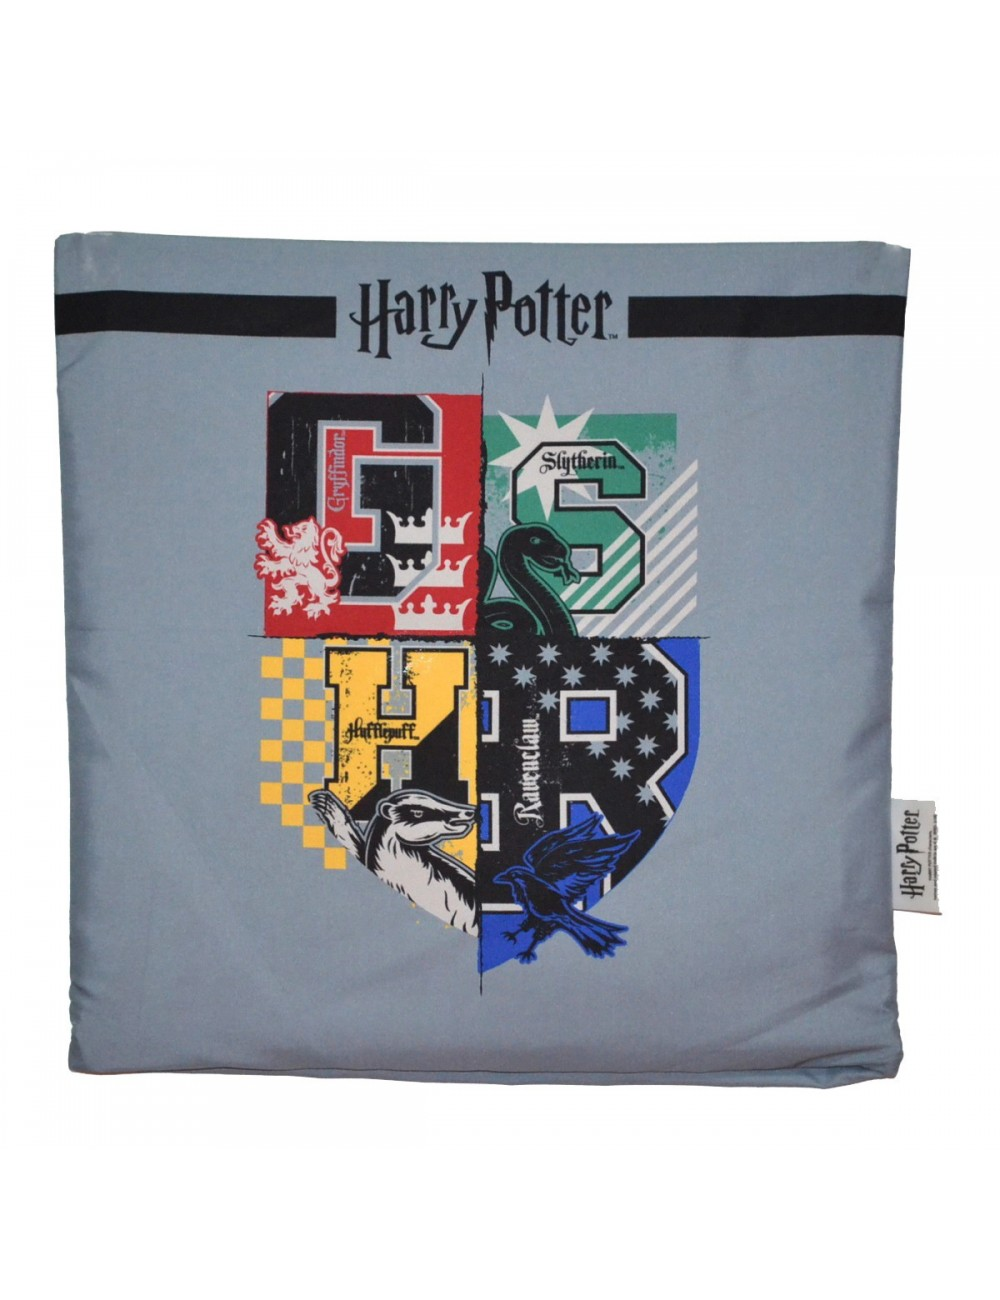 Fata de perna Harry Potter, gri, 40 x 40 cm